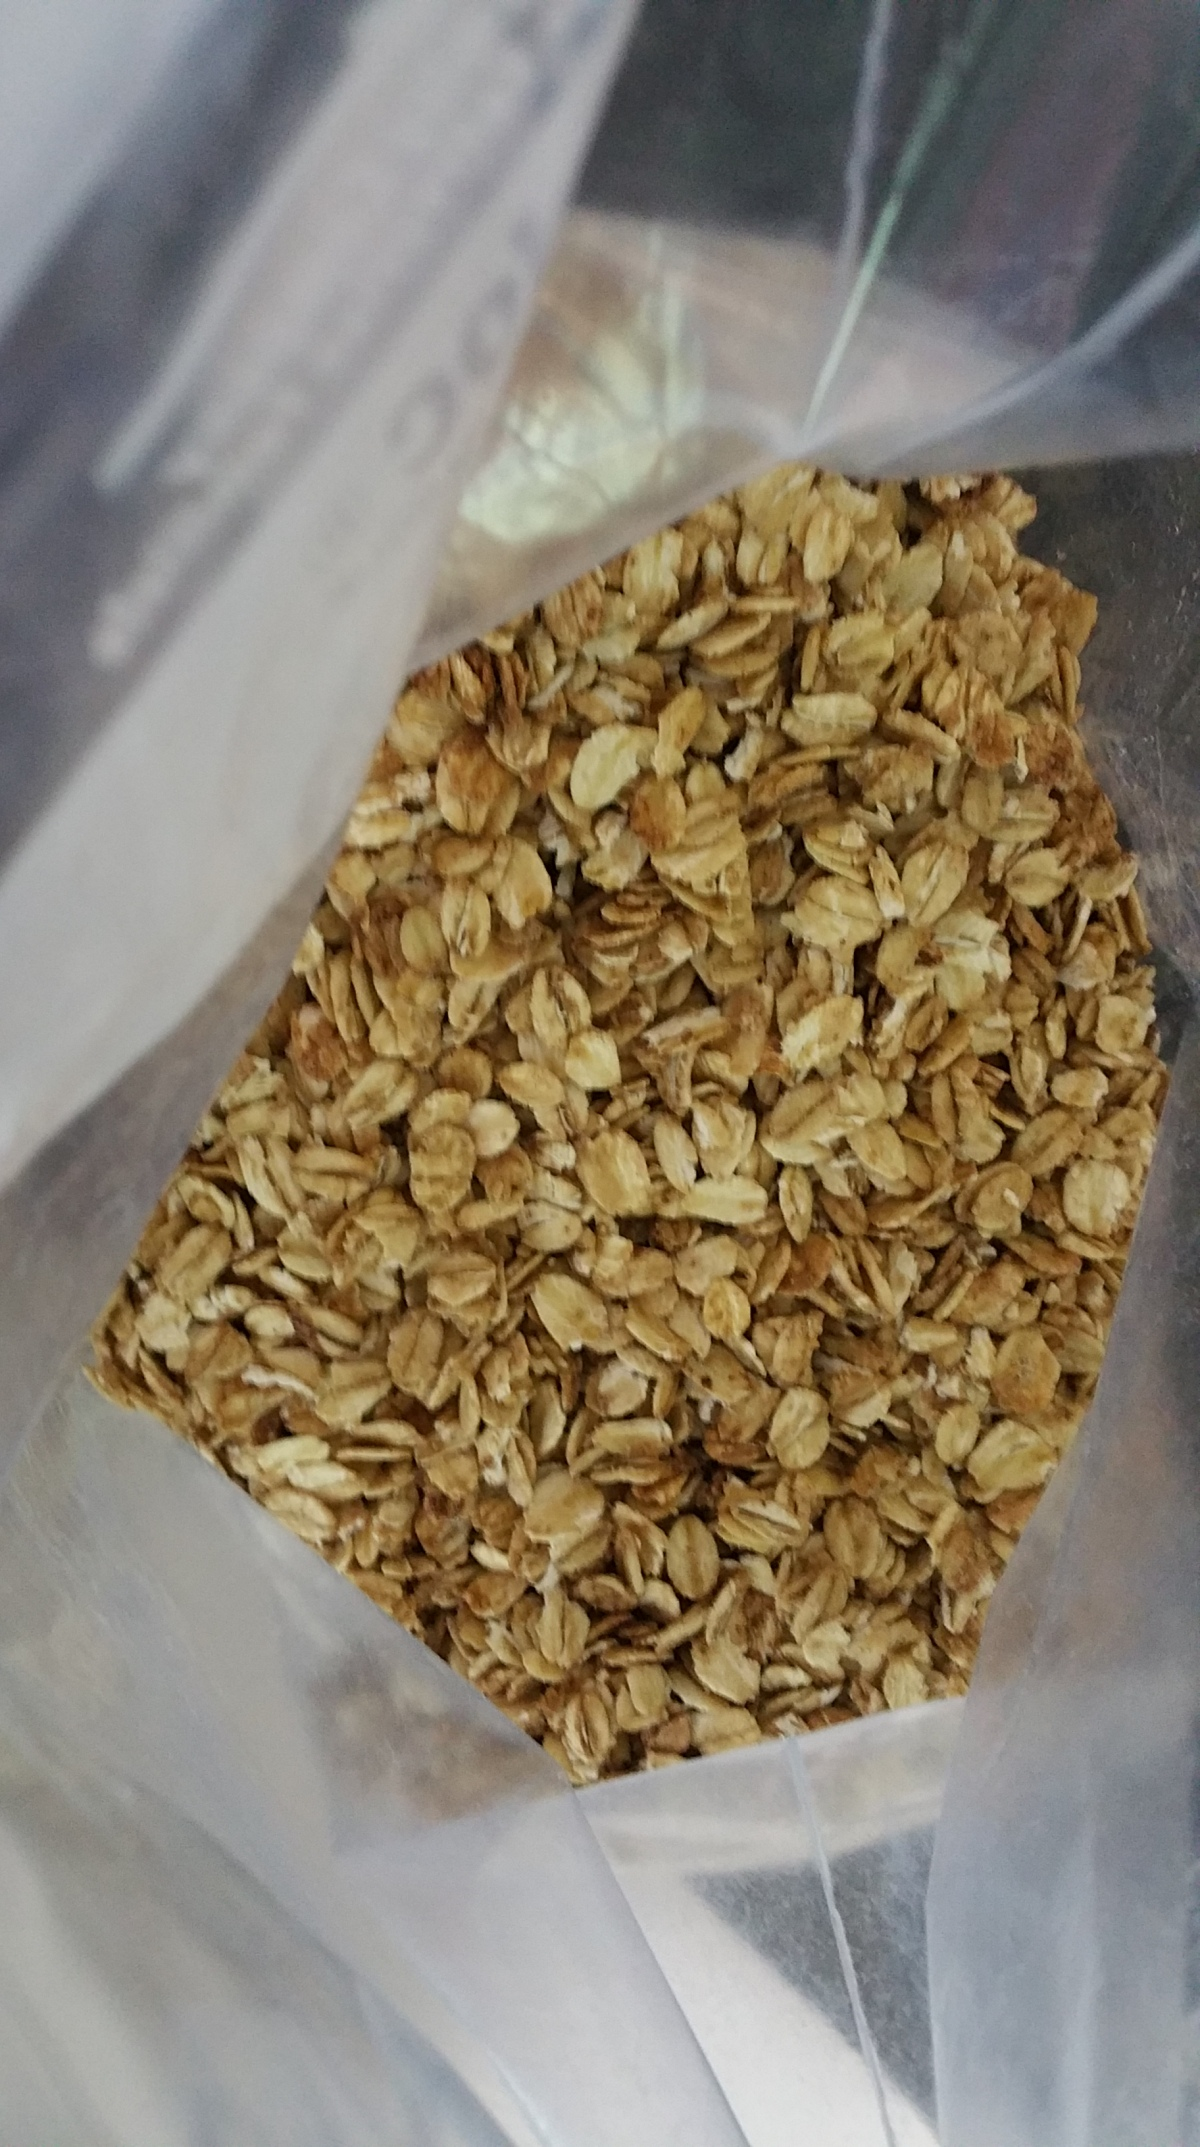 Basic Granola and Cooking withStudents